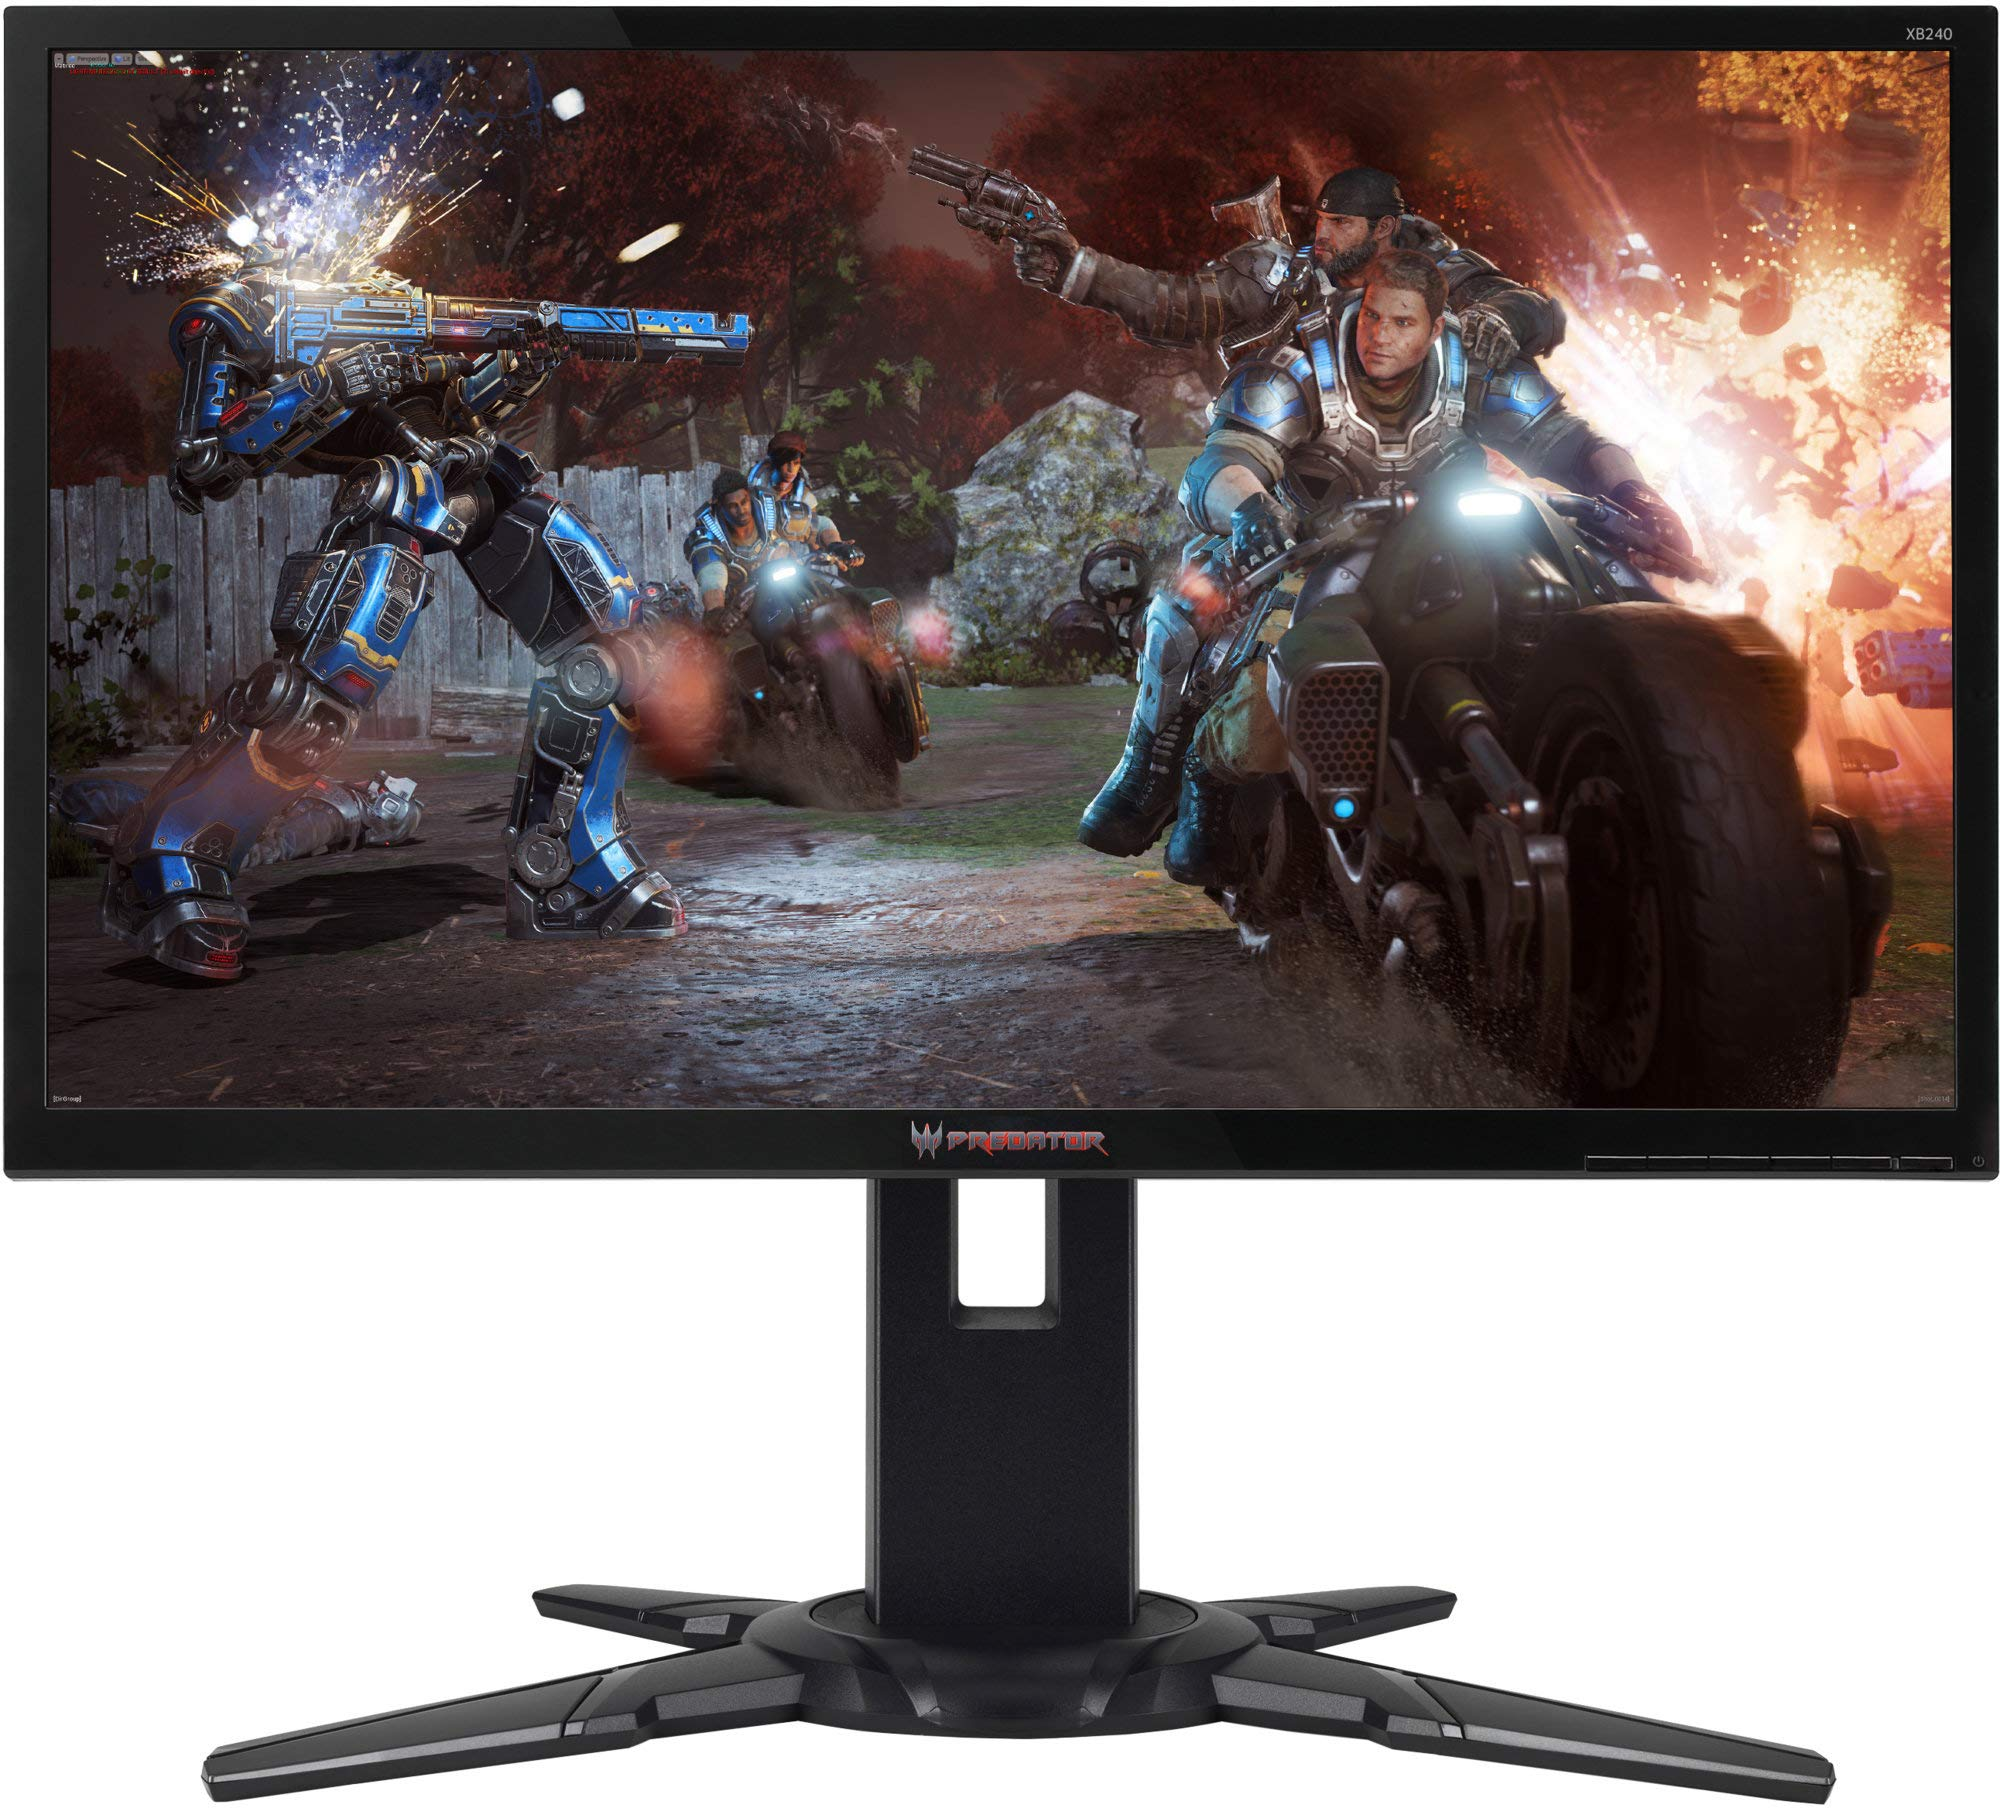 Acer Predator XB240HBbmjdpr 24 Inch FHD Gaming Monitor, Black (TN Panel, 144 Hz, 1 ms, DP, HDMI, DVI, Height Adjustable Stand)